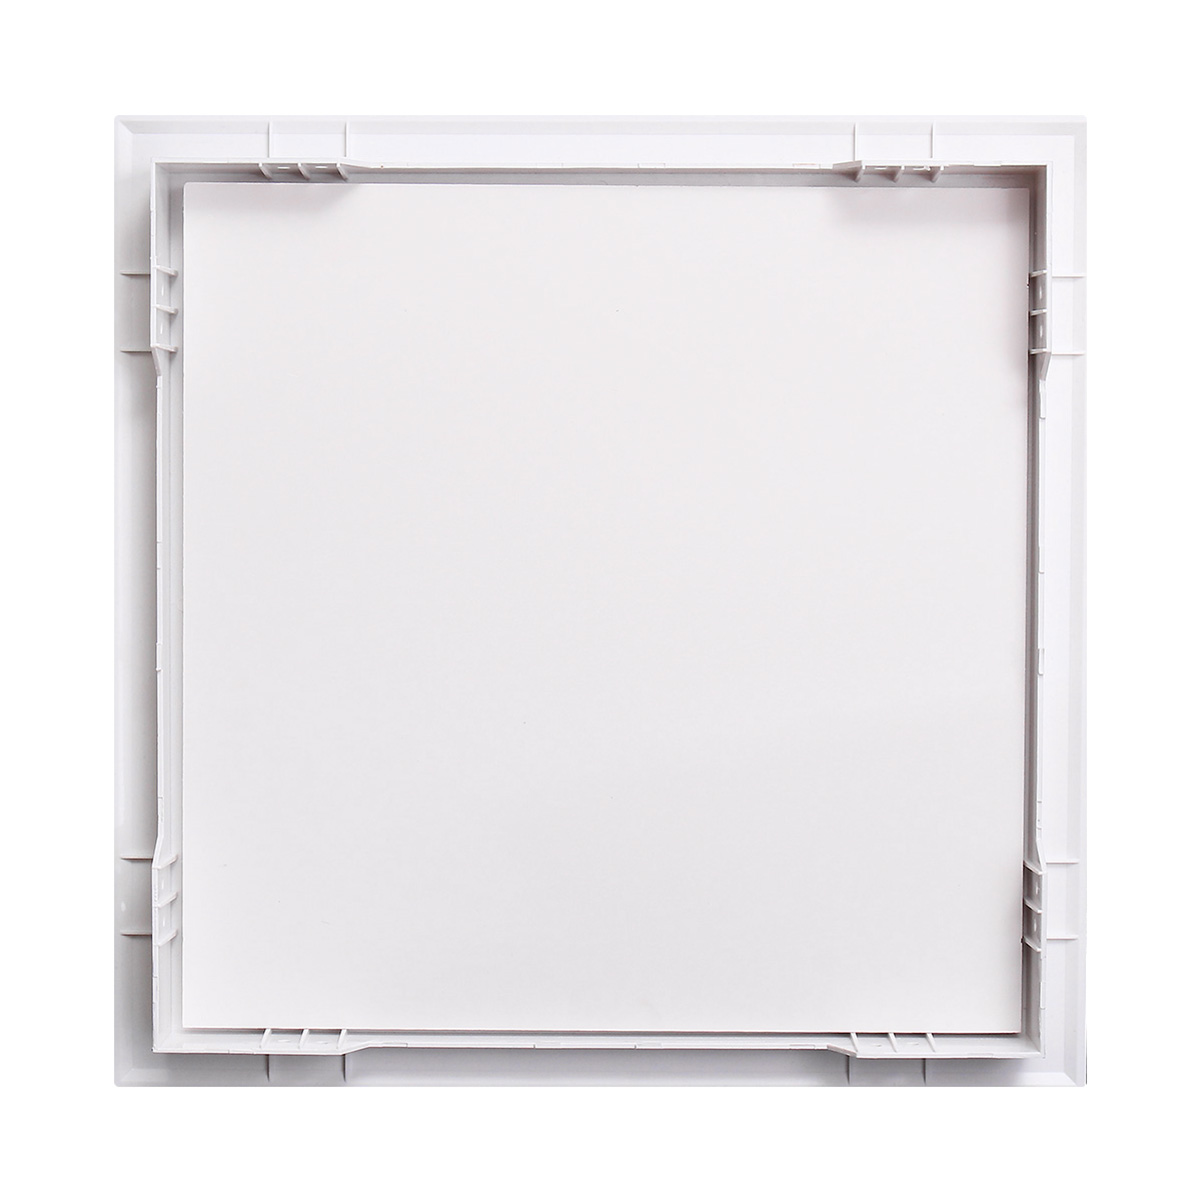 Metal Access Panel Picture Frame Inspection Hatch Revision Door Plumbing Sizes